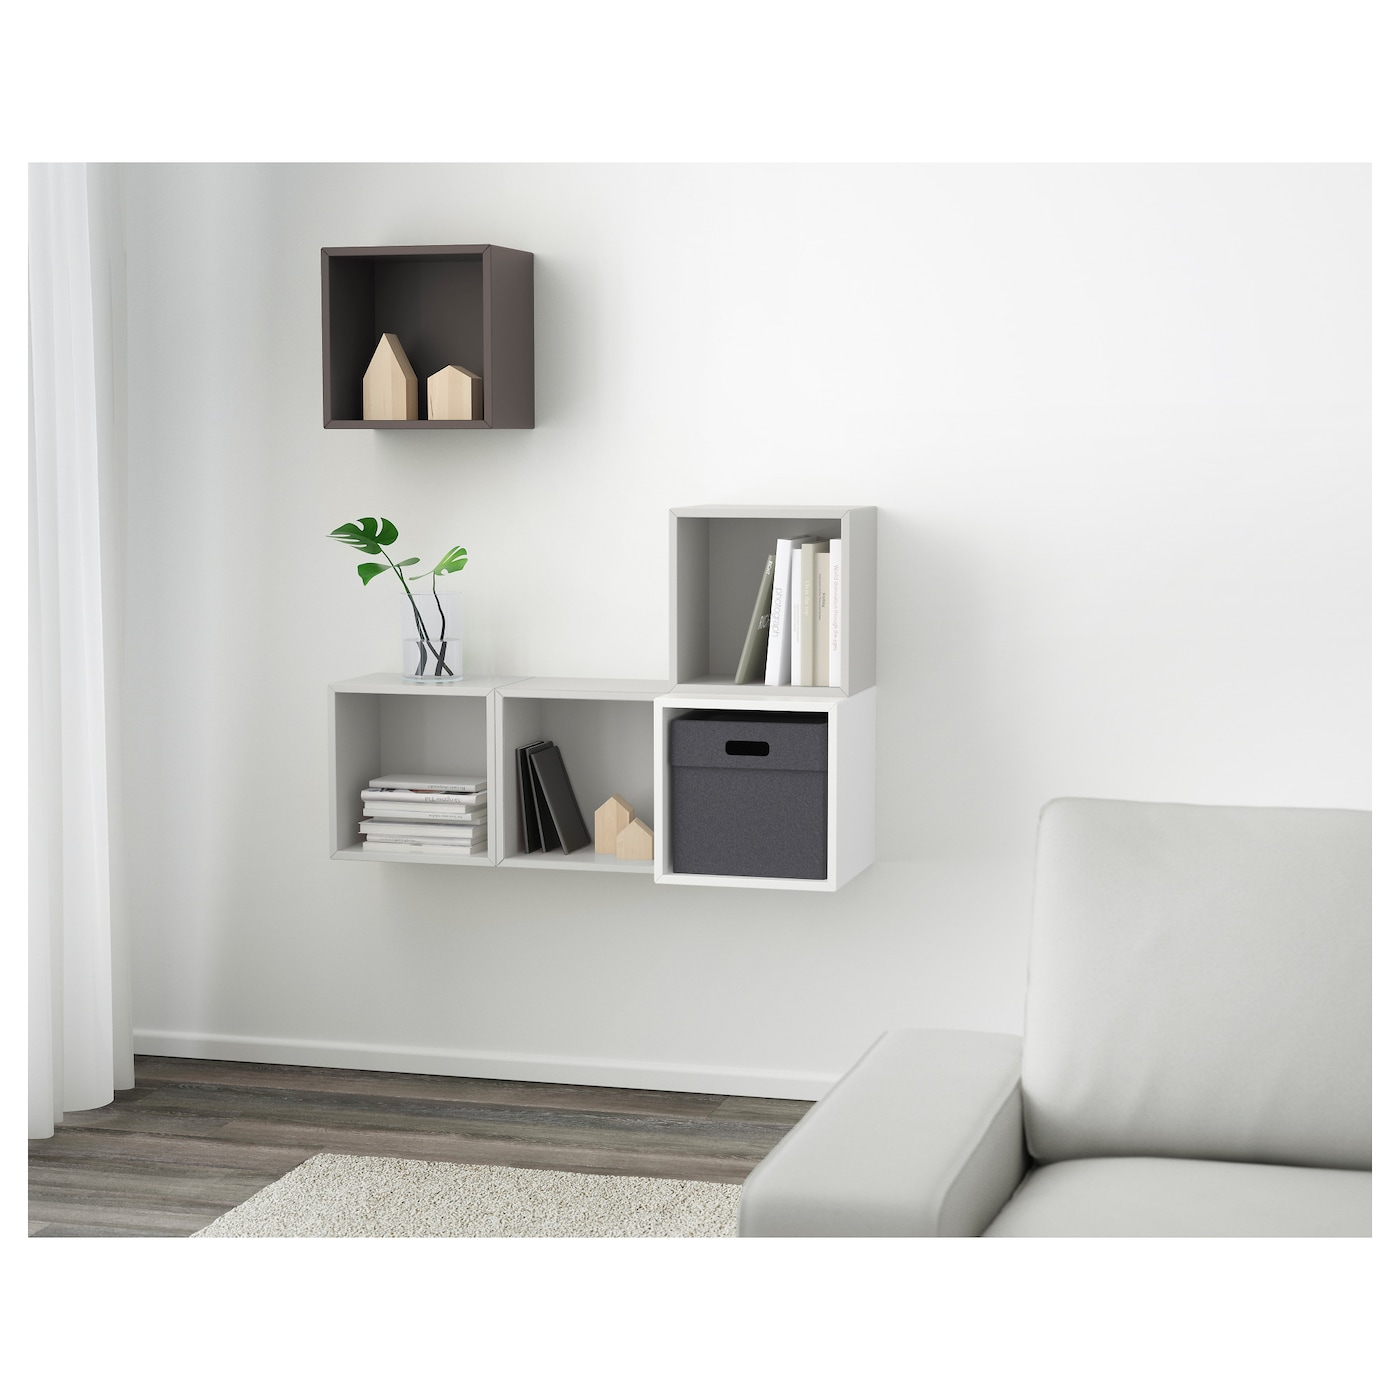 eket wall mounted cabinet combination white light grey dark grey 105 x 35 x 120 cm ikea. Black Bedroom Furniture Sets. Home Design Ideas